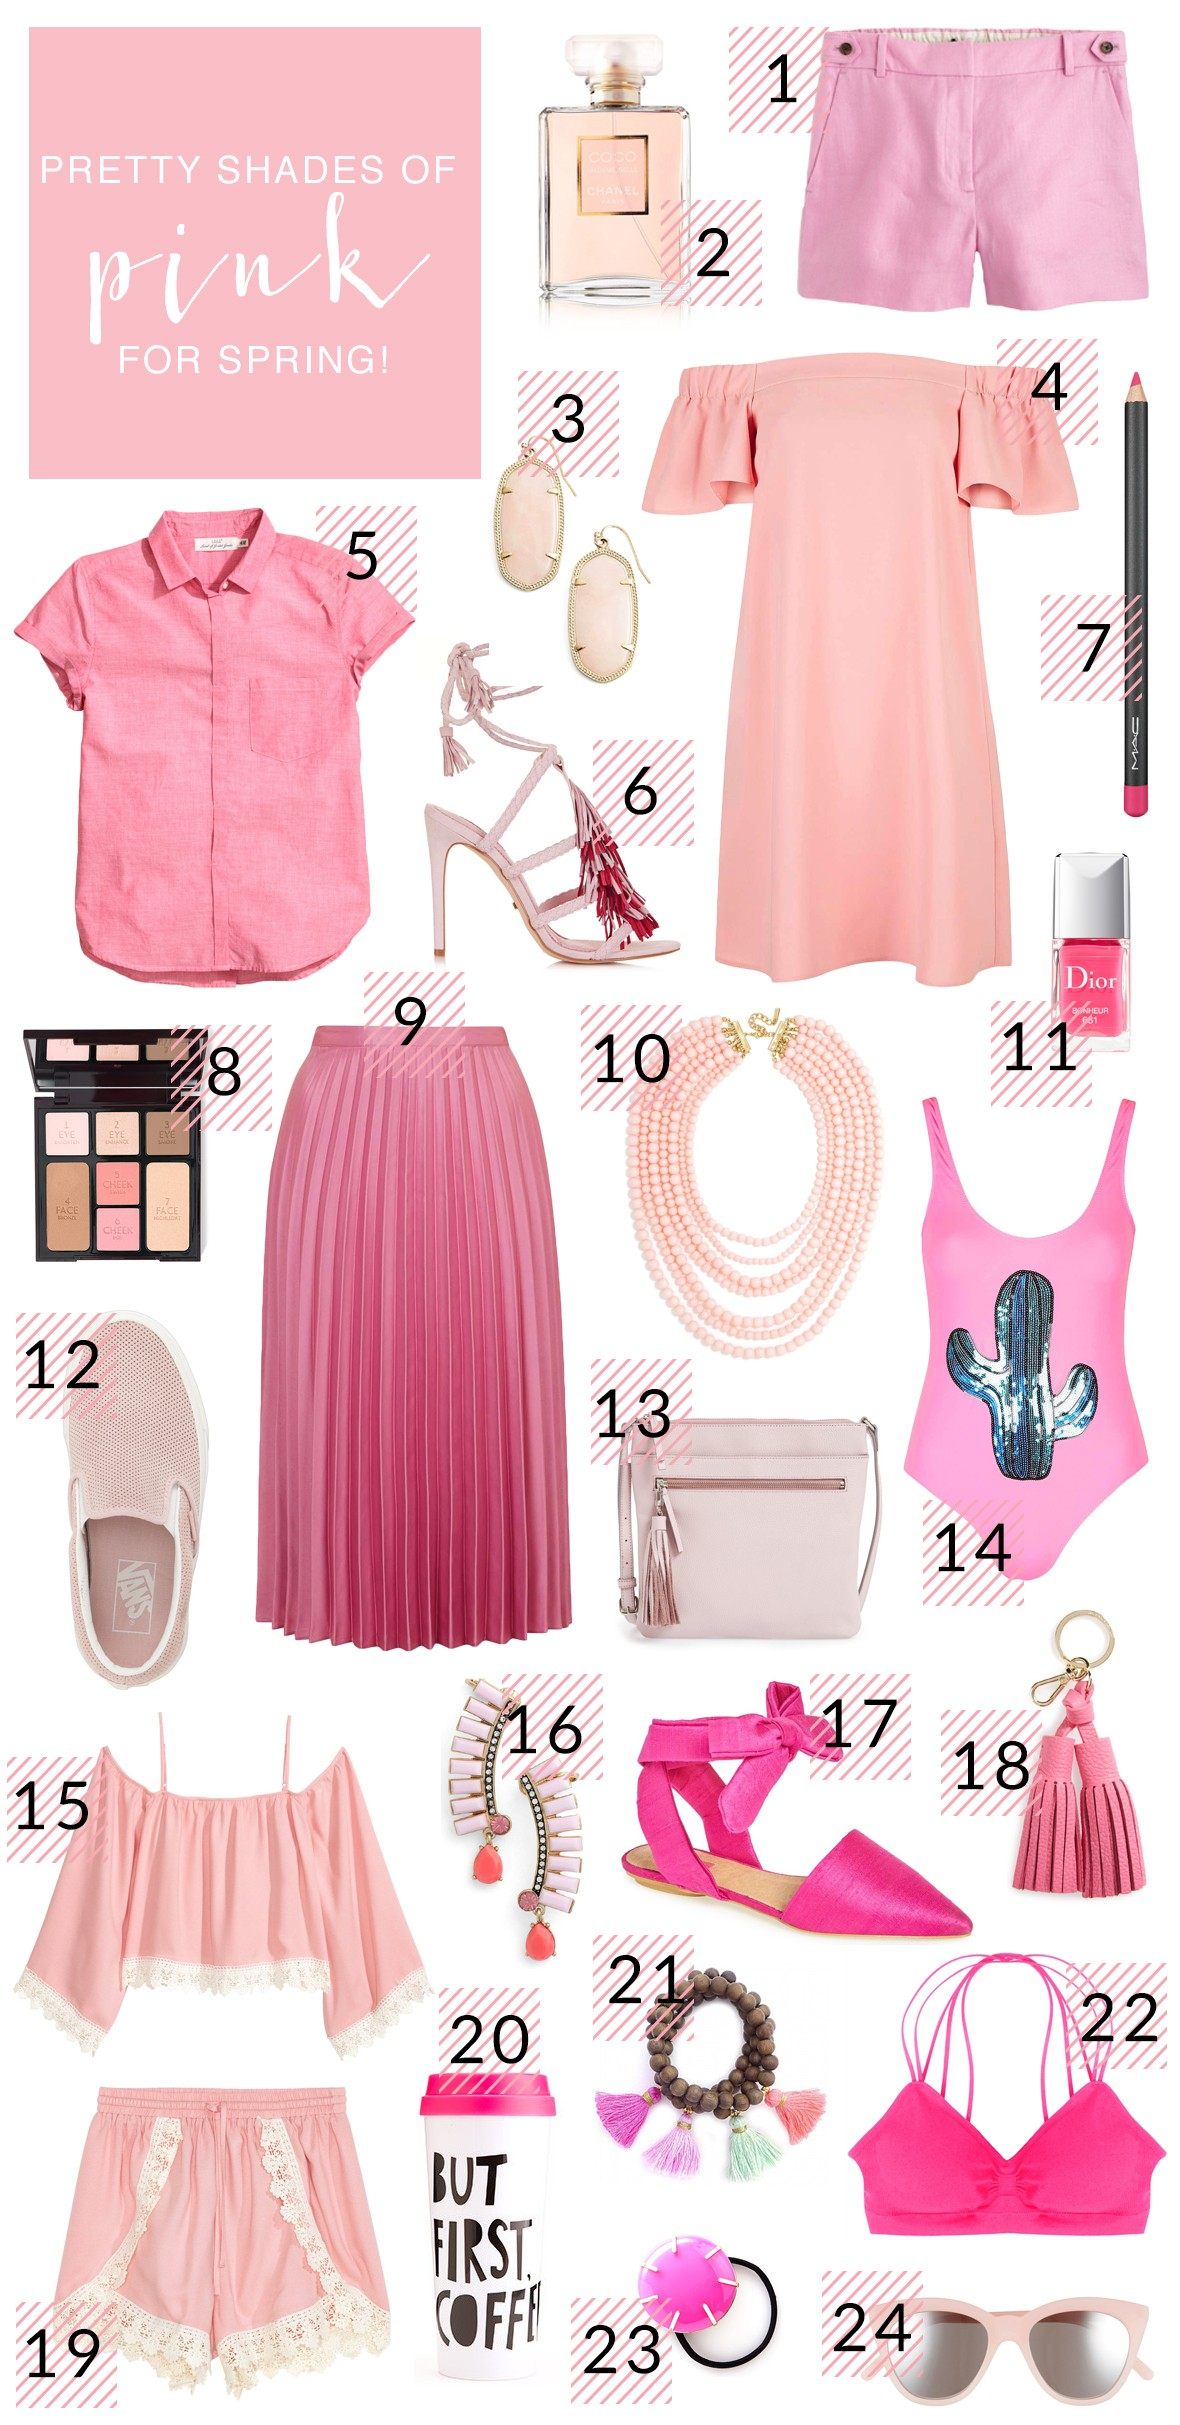 3fda562db Pretty Shades Of Pink For Spring - Poor Little It Girl